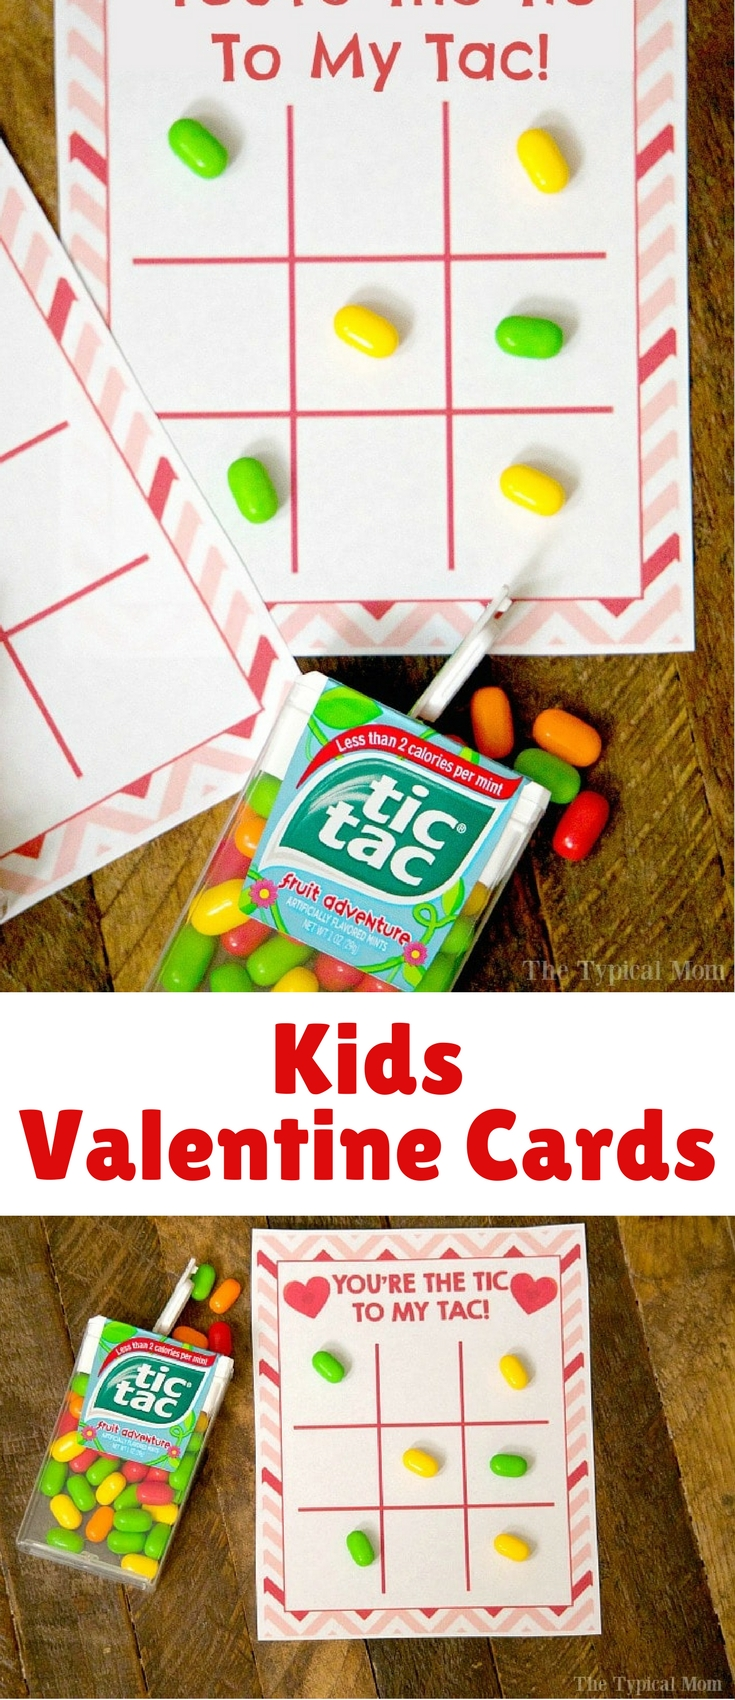 Whether you have a boy or girl every child loves a fun game of tic tac toe, so I thought I'd make these cute kids Valentine cards that are really perfect to give to anyone!